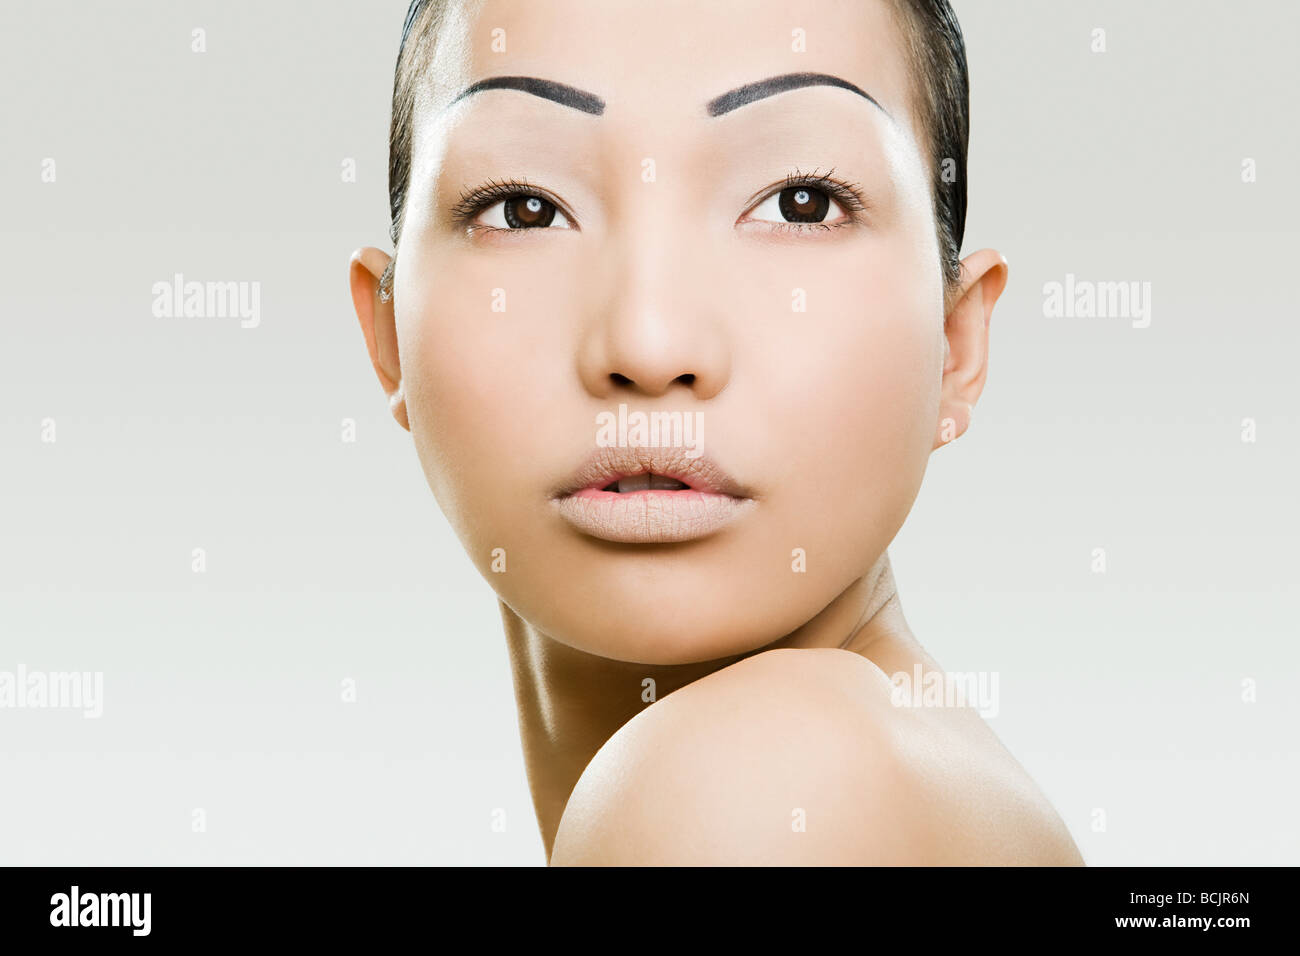 Young woman with painter eyebrows - Stock Image